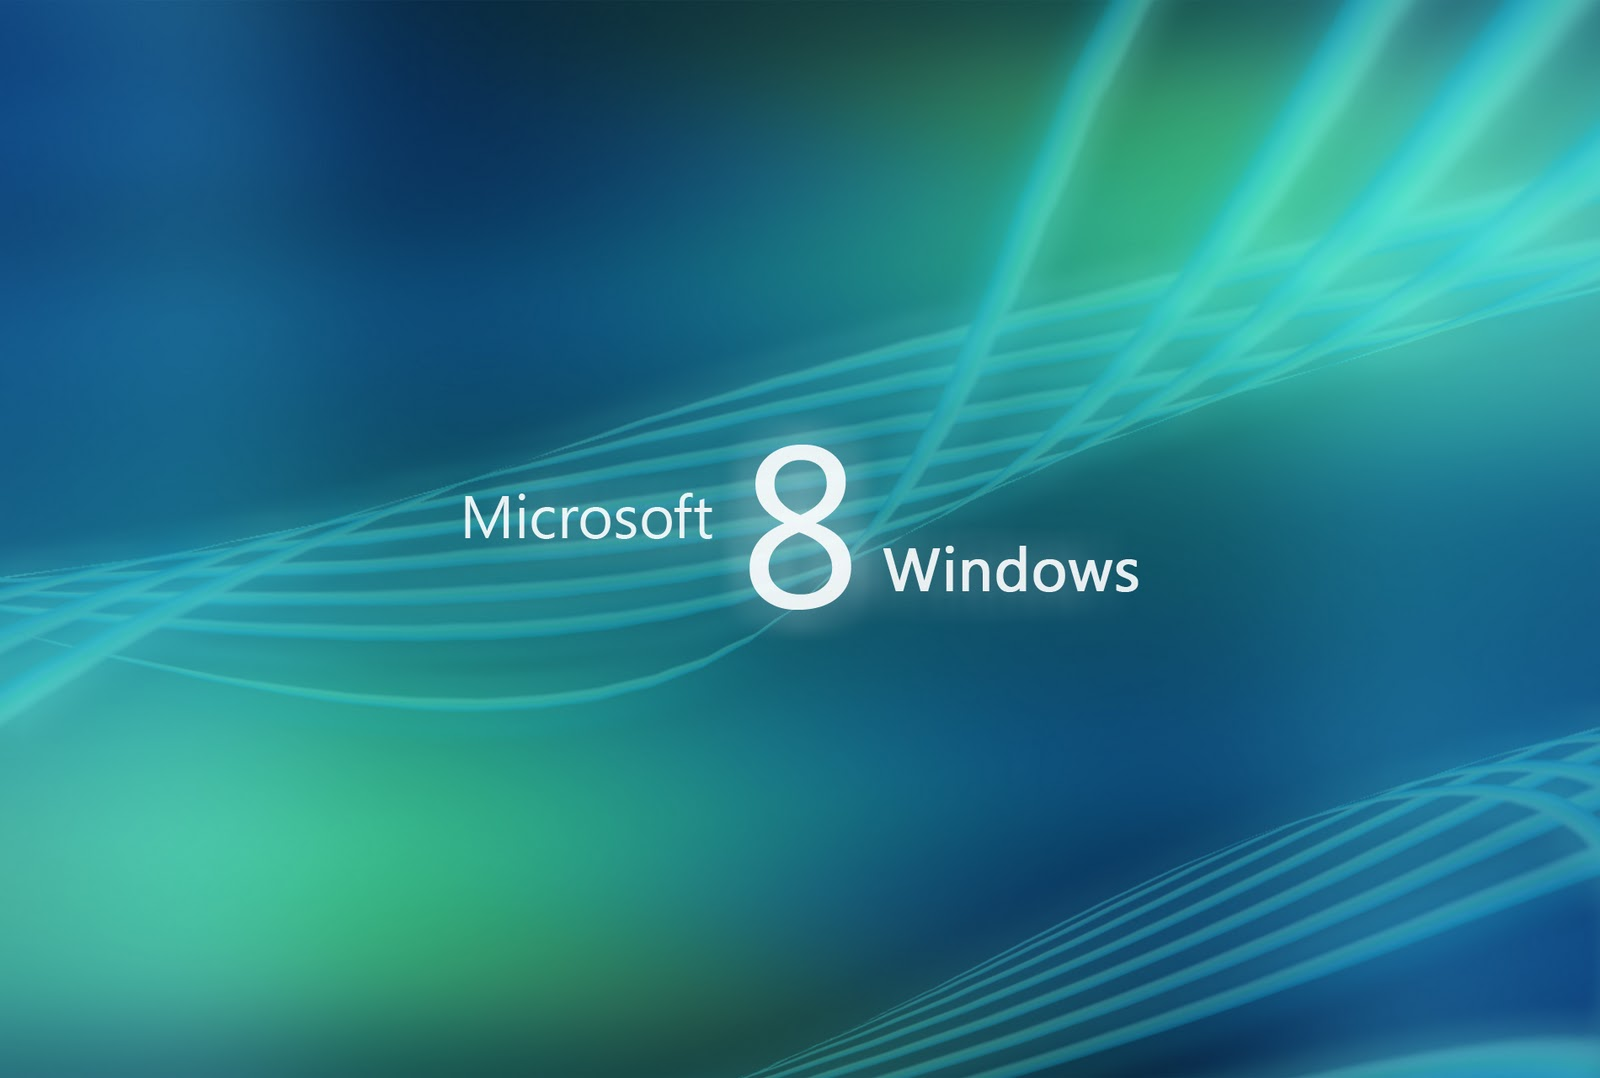 Wallpapers For Windows 81 Pro In HQ